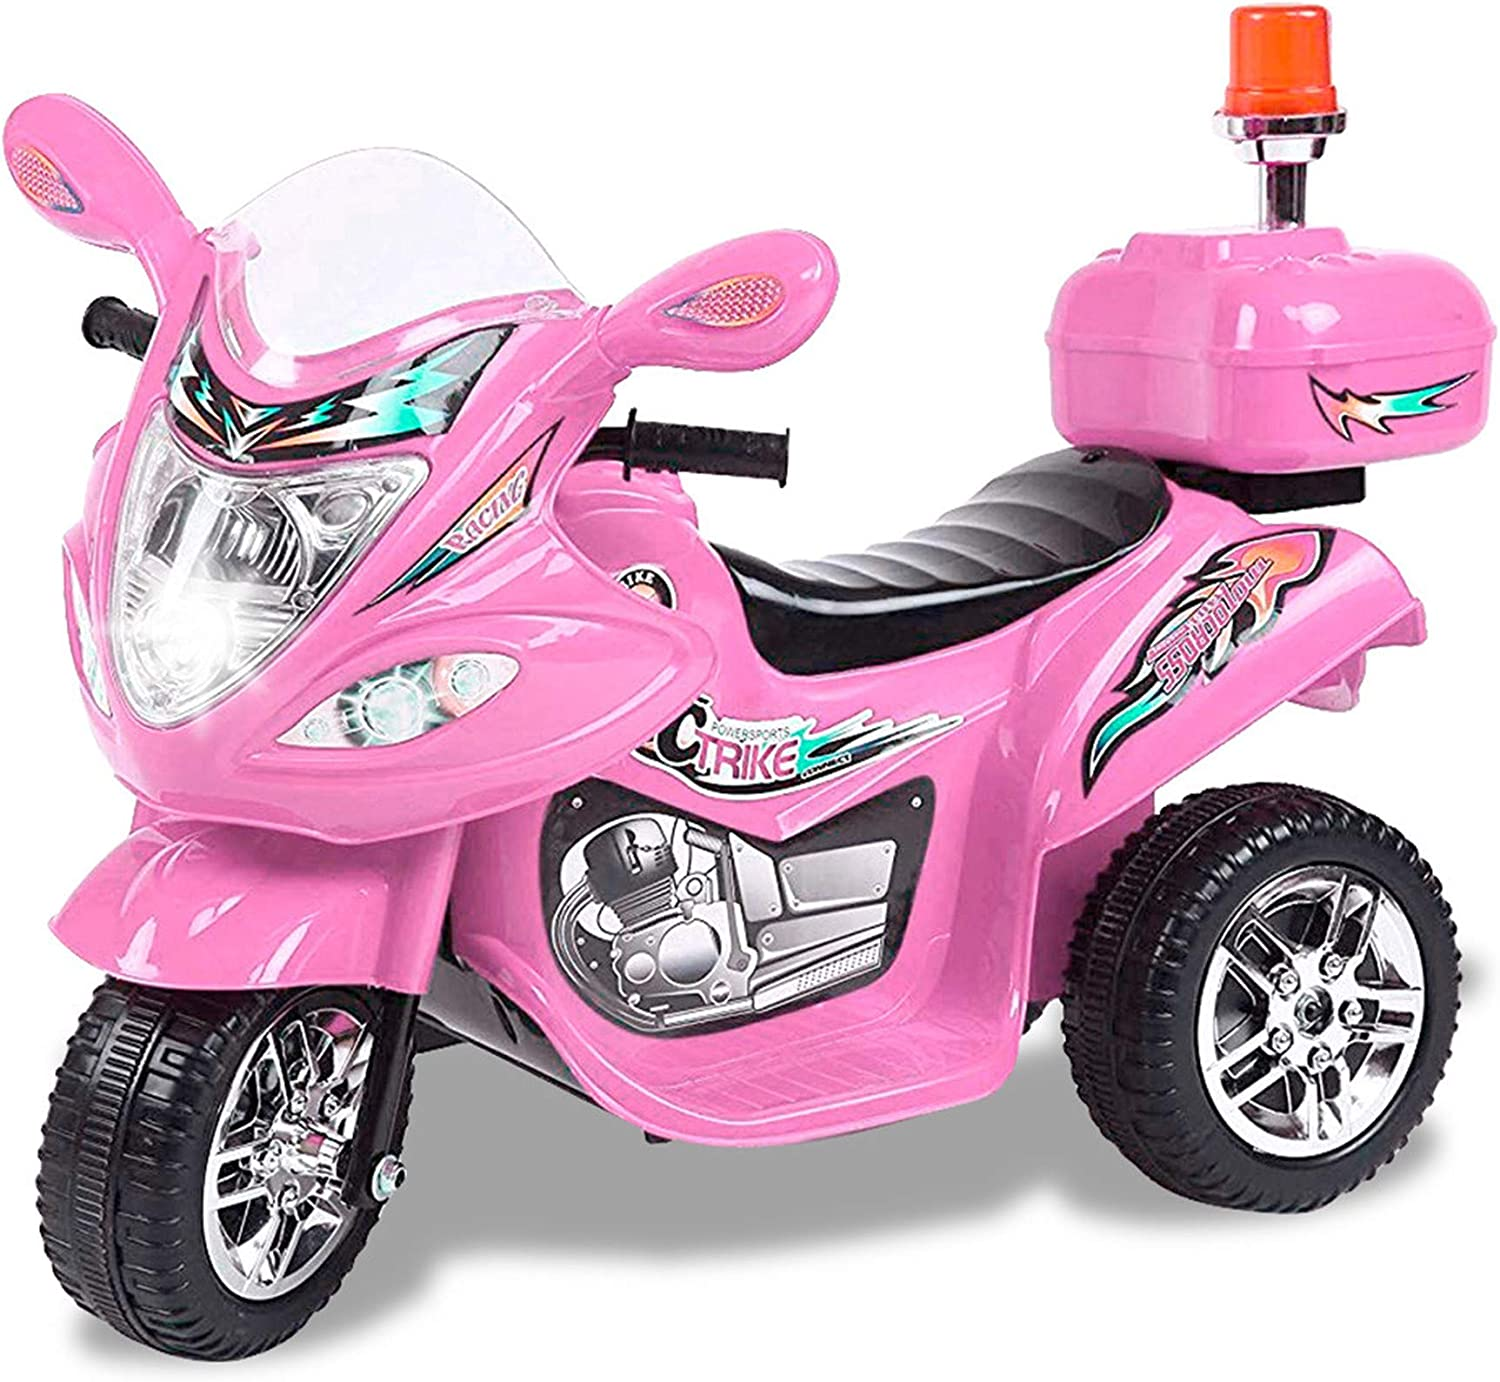 Tamco Motorcycle Ride On Toy with Flash Alarm Light, Electric Power Tricycle with Foot Pedal, 7 Colors Flashlight Front Light, Music & Honk, Super Easy Driving for Kids Max Load 45LB (Pink)